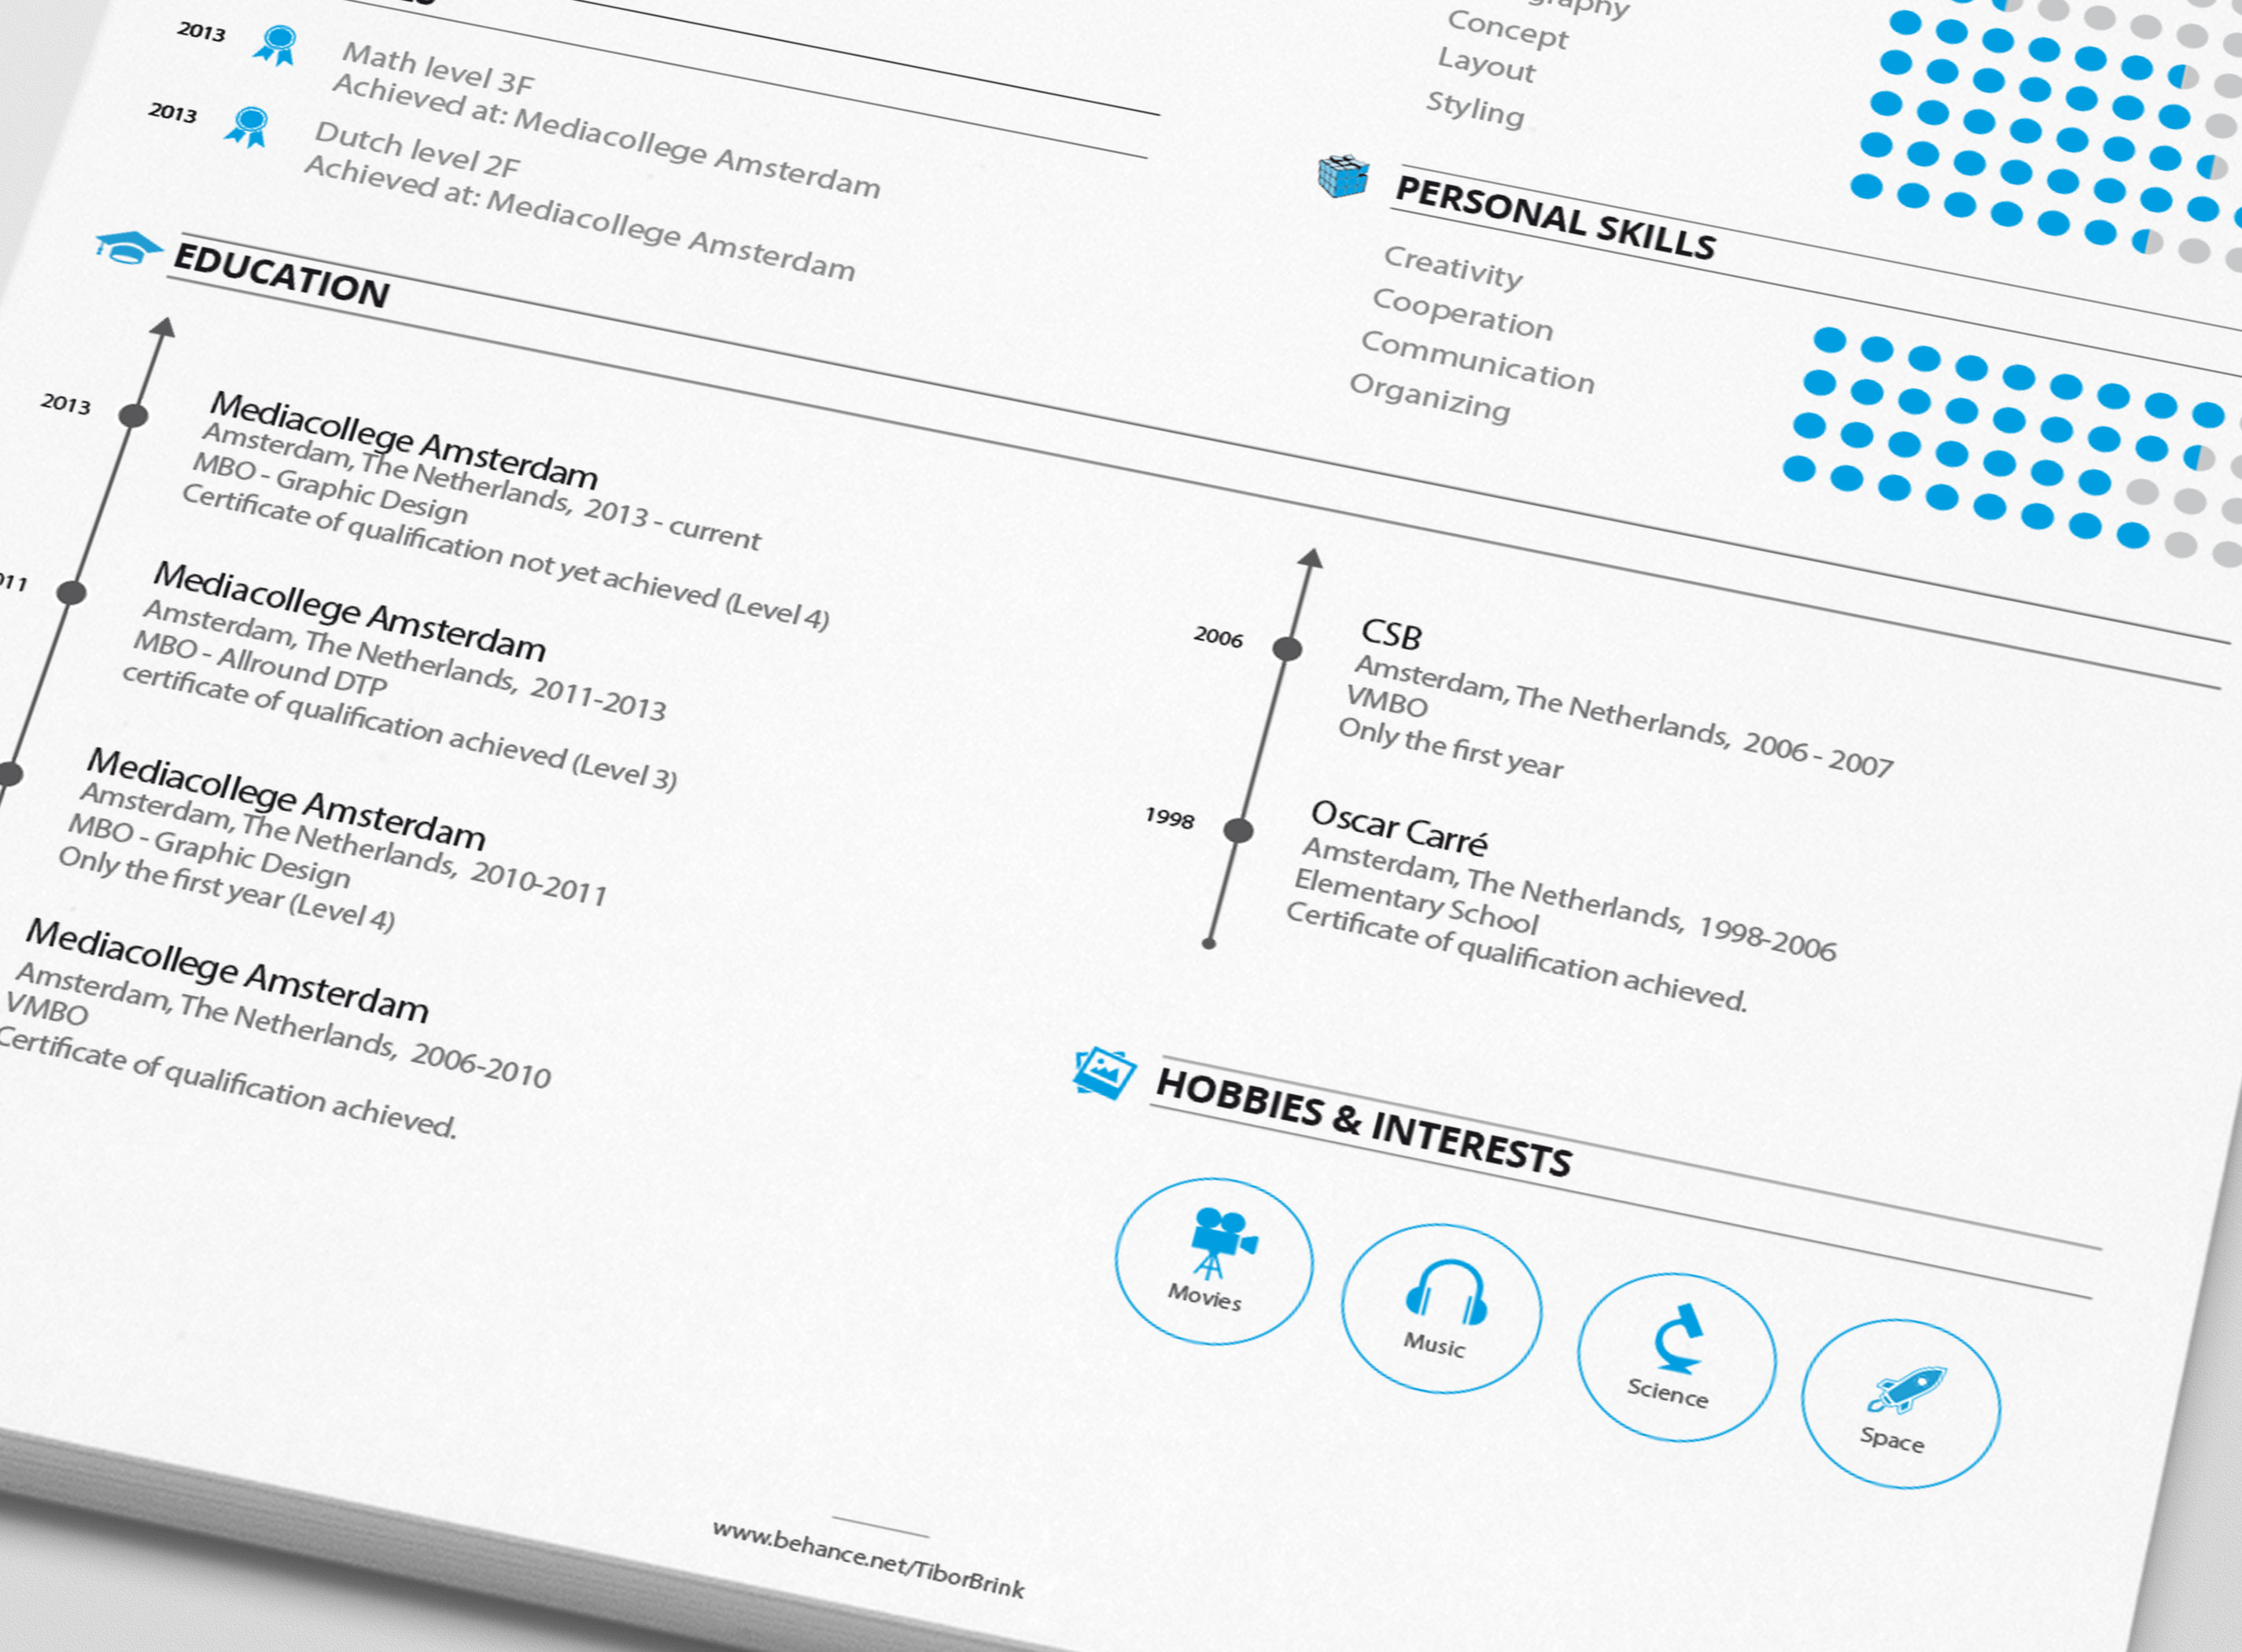 Personal Resume U0026 Promotion On Behance  Personal Skills For Resume